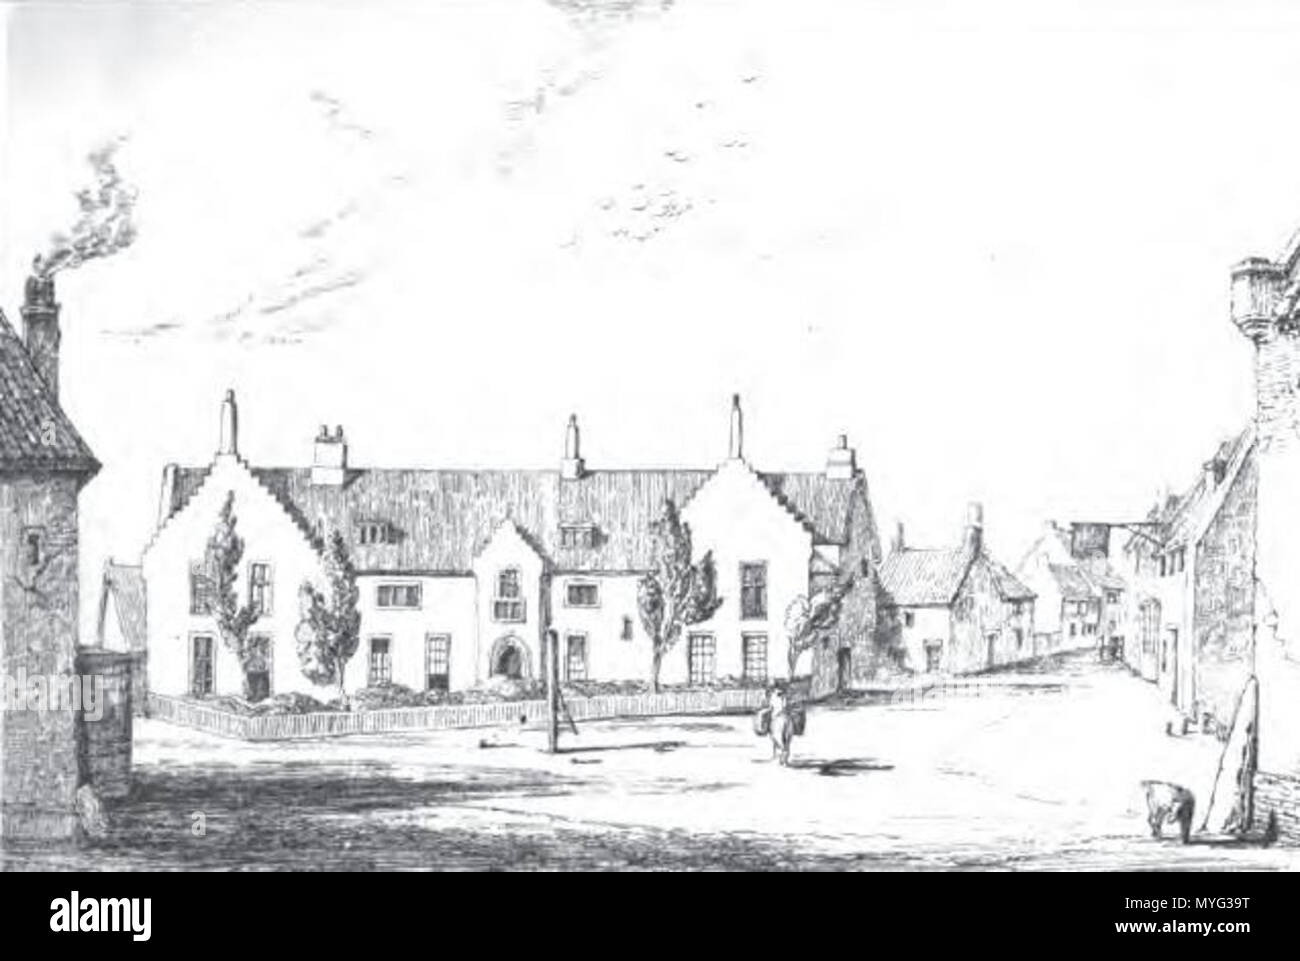 . English: Illustration of Gresham's School, Holt, from John William Burgon's The Life and Times of Sir Thomas Gresham (1839) 'from a sketch made on the spot in 1838'. 1839 engraving from a sketch dated 1838. Unknown 220 Gresham's School, 1838 - Stock Image